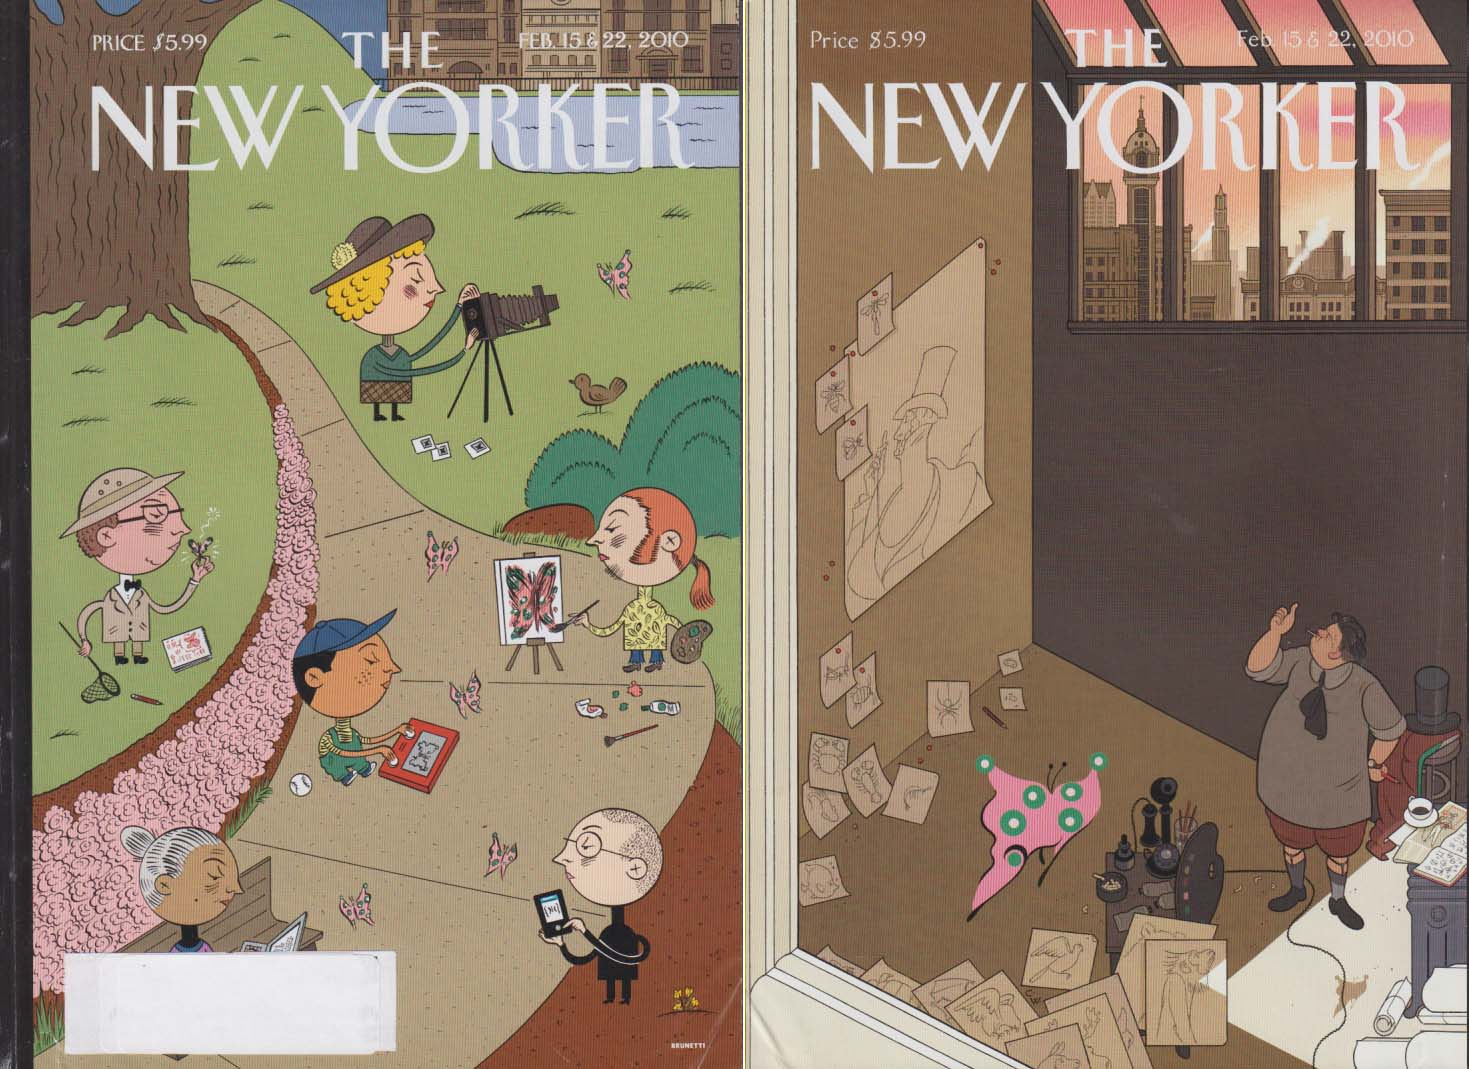 New Yorker cover Brunetti / CW double cover 2/15 2010